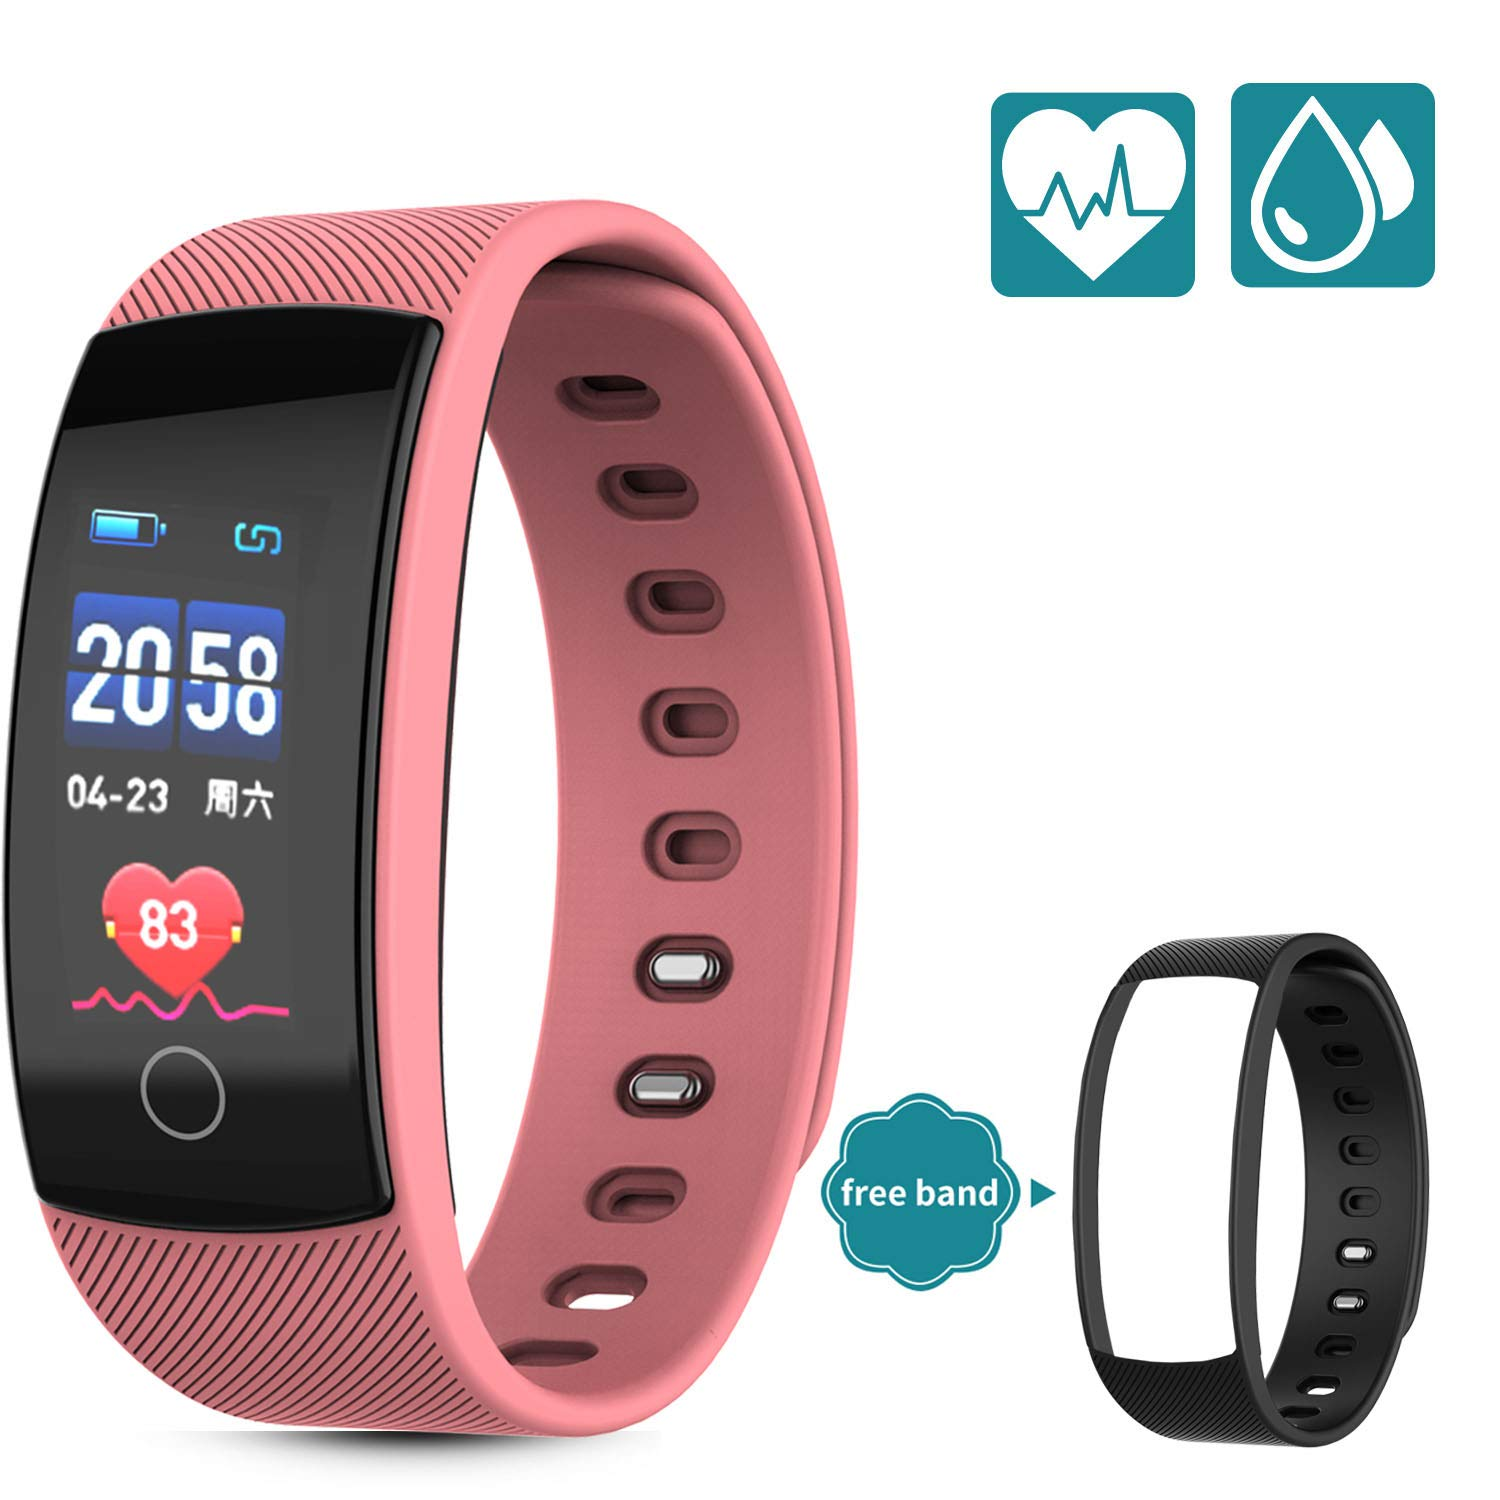 HUPPER Fitness Trackers - Heart Rate Monitor, Pedometer, Sleep Monitor and IP 67 Waterproof Activity Tracker Watch with 5 Sport Modes, Step and Calorie Counter for Kids Women and Men by HUPPER